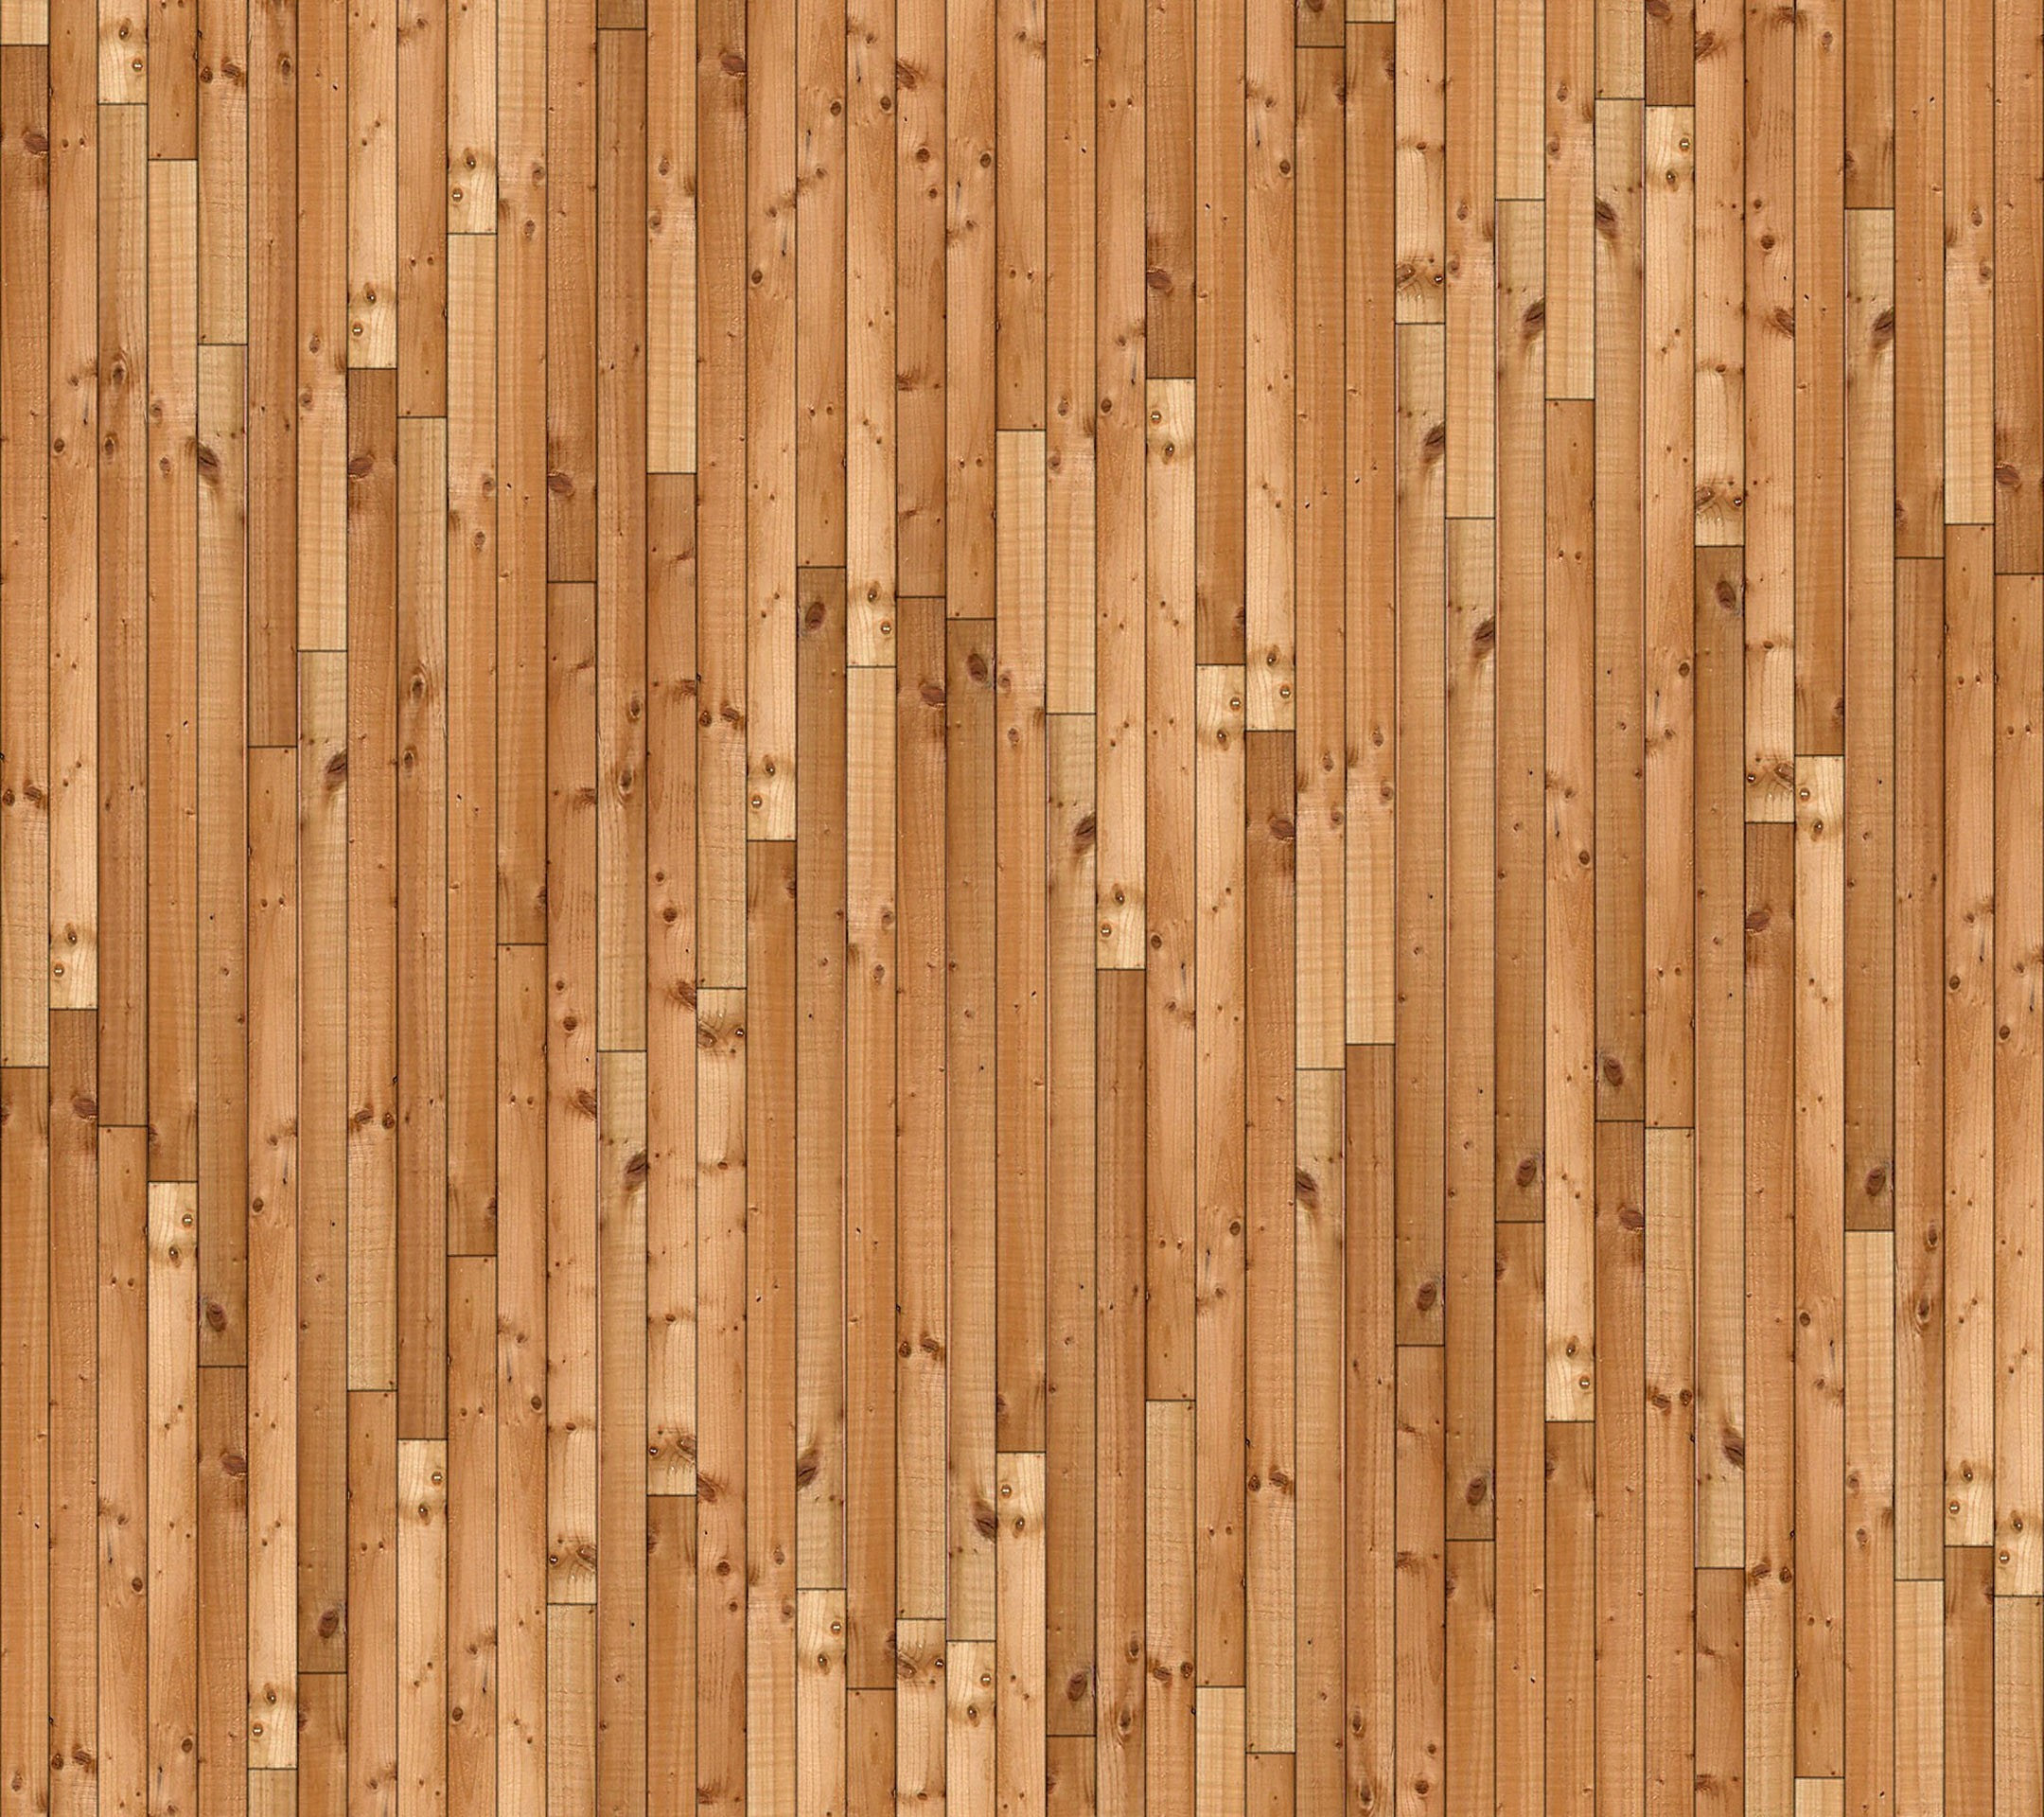 Wood Panels Digital Art Mobile Wallpaper 21601920 6036 4191167850